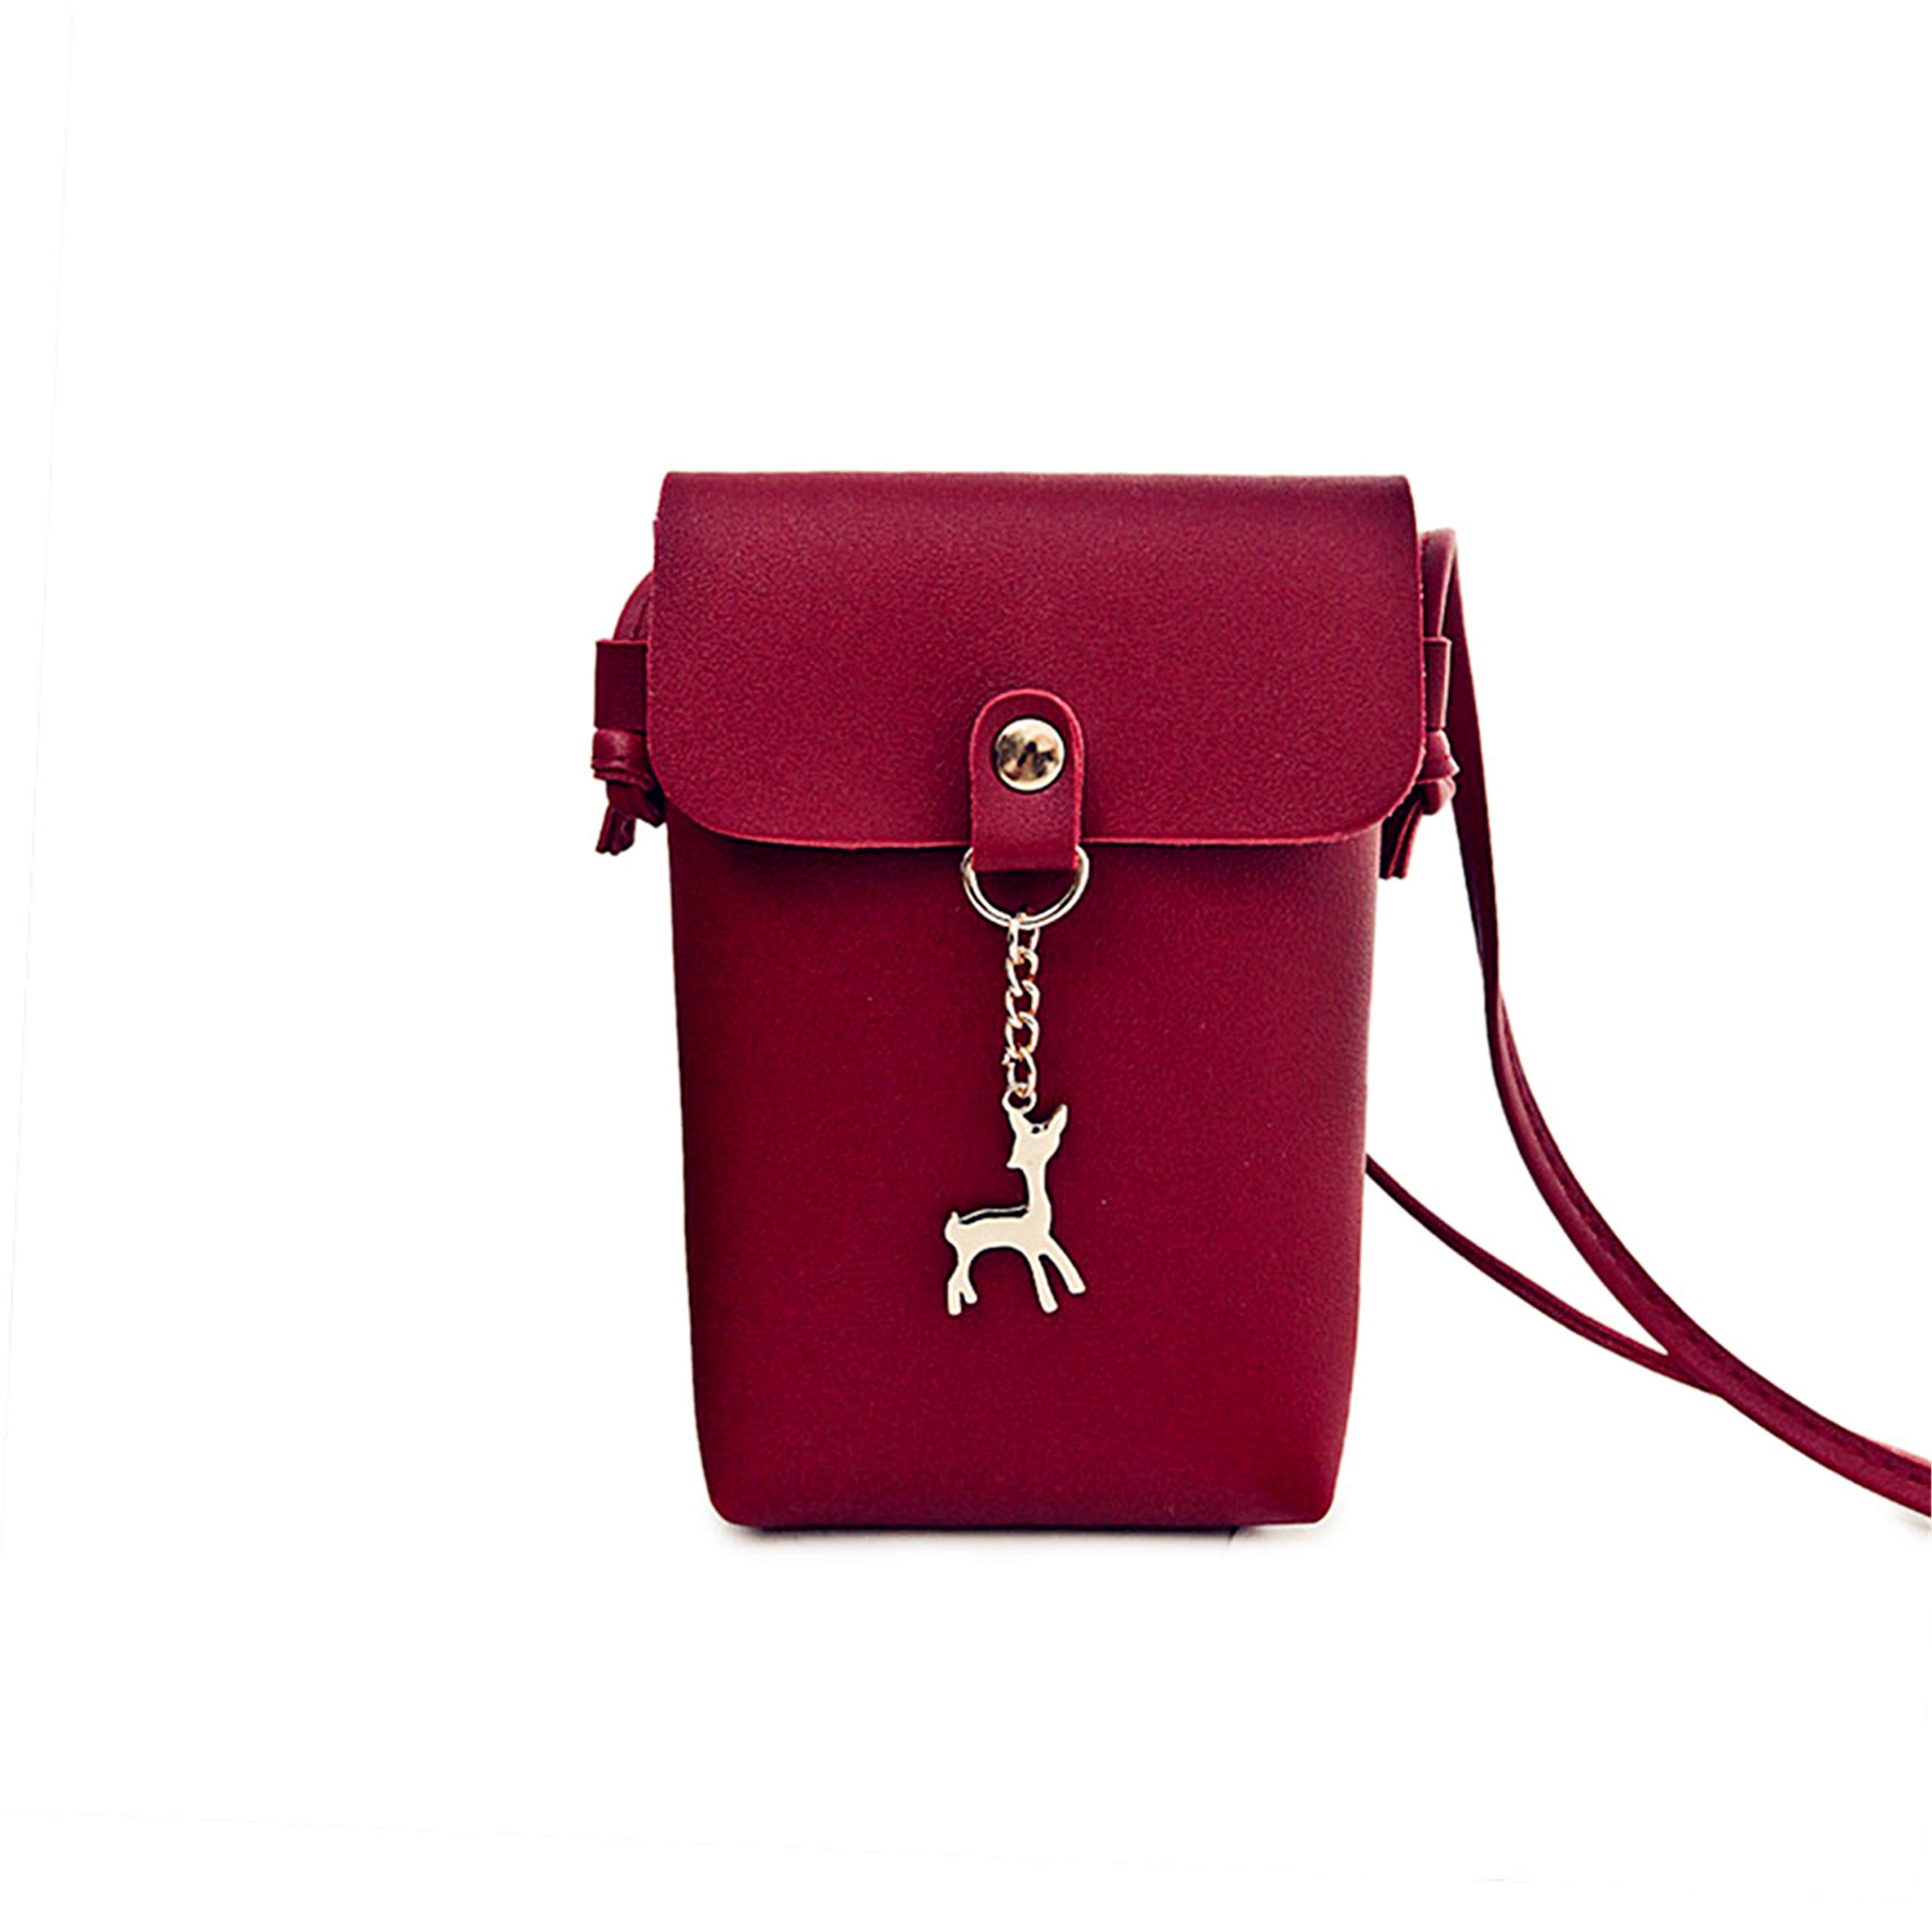 Mufly Women Small Crossbody Purse Cell Phone Pouch Wallet Shoulder Bag PU Leather Mini Cellphone Pouch for Little Girl(wine red)